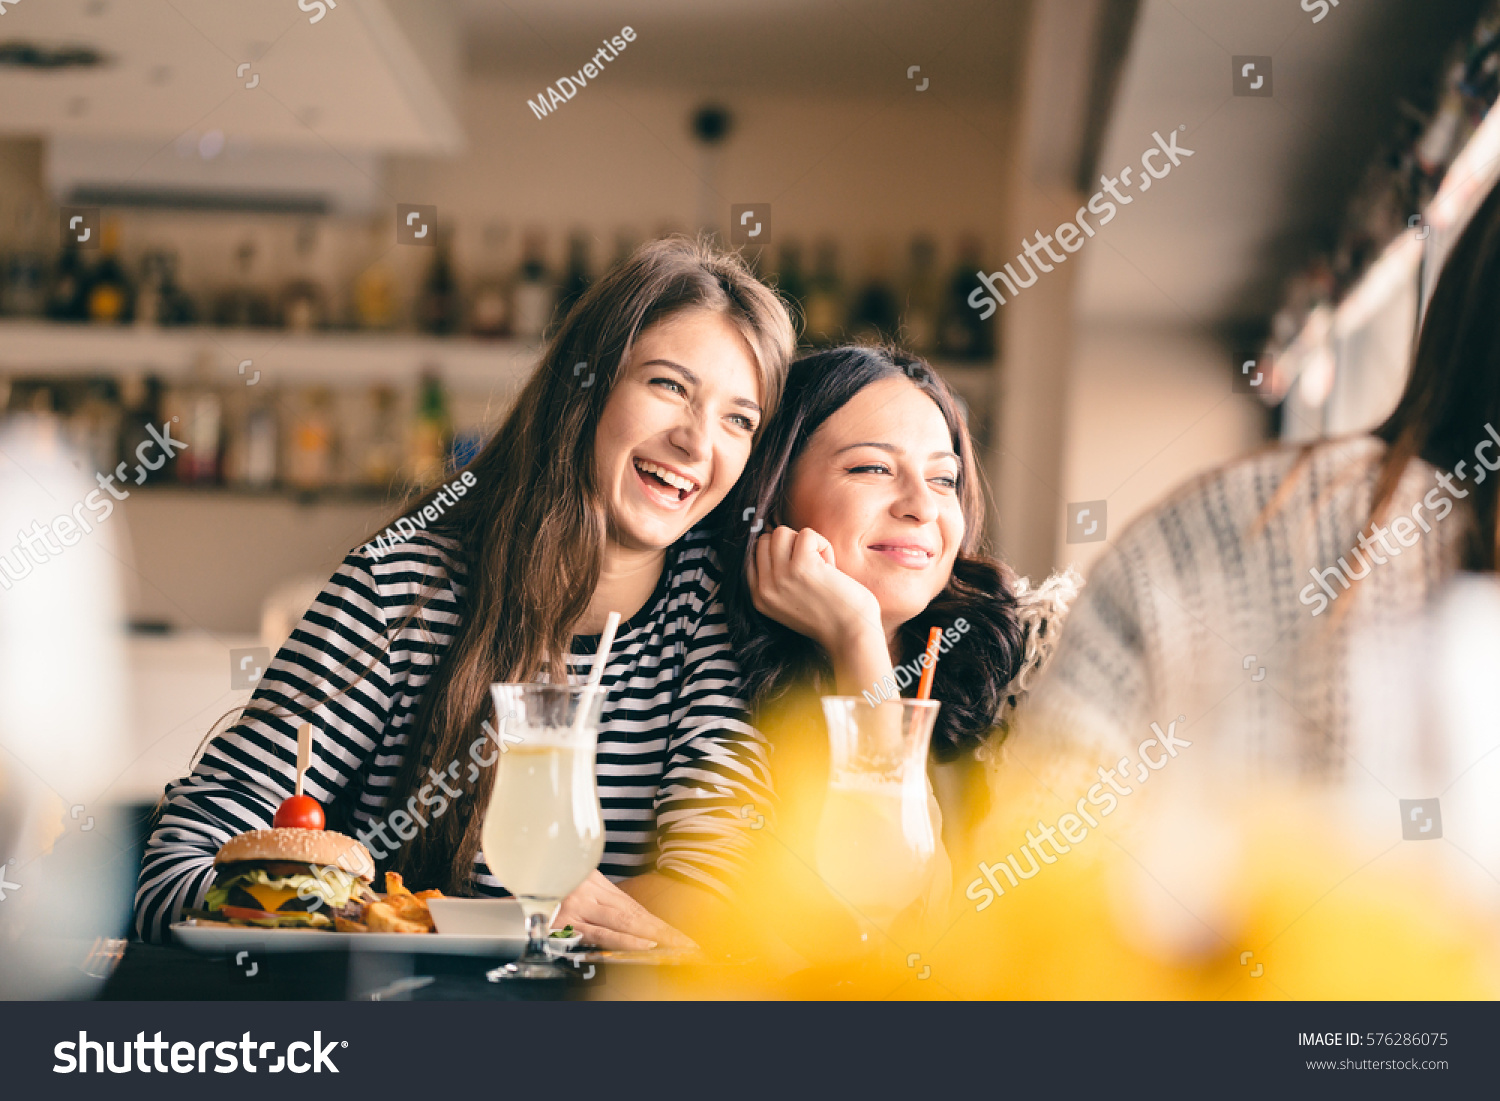 Old friends meeting up after long time for drinks and eating, talking about their memories. Girlfriends showing signs of affection, reliving beautiful moments from the past, being happy. #576286075